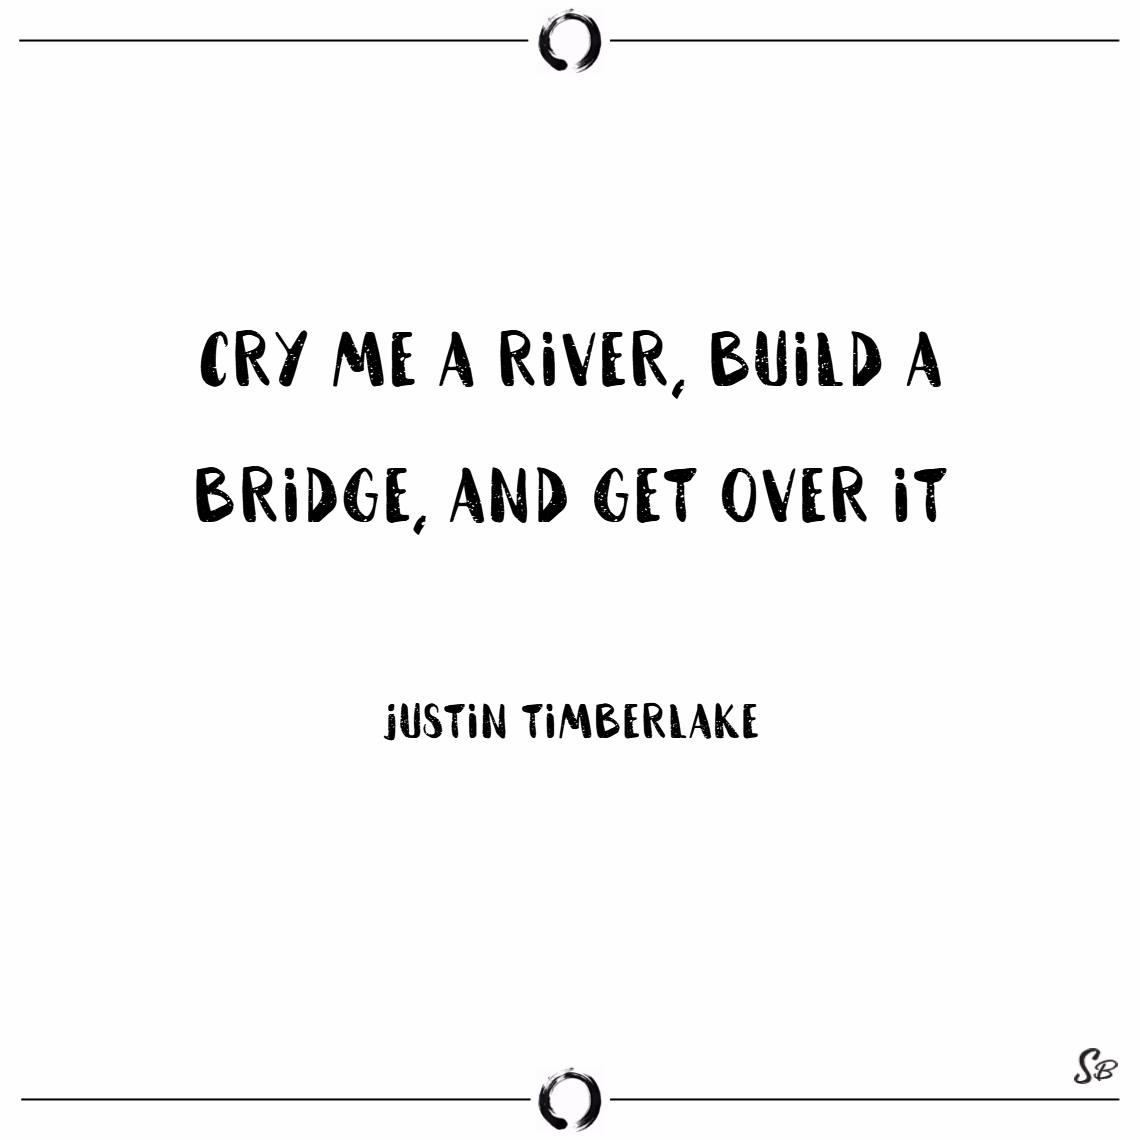 Cry me a river, build a bridge, and get over it. –